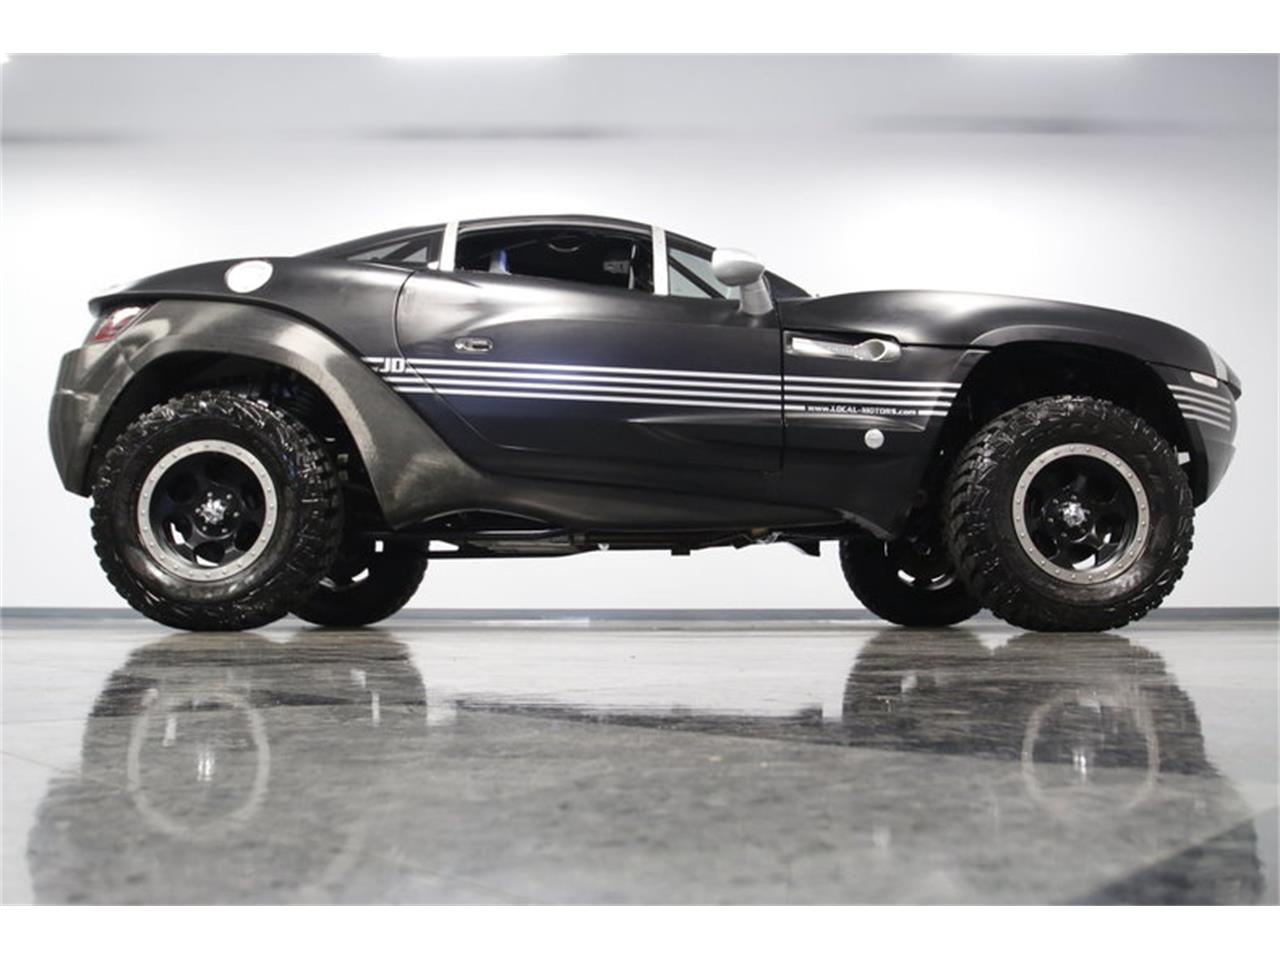 Large Picture of '11 Race Car - $77,995.00 - MO3X